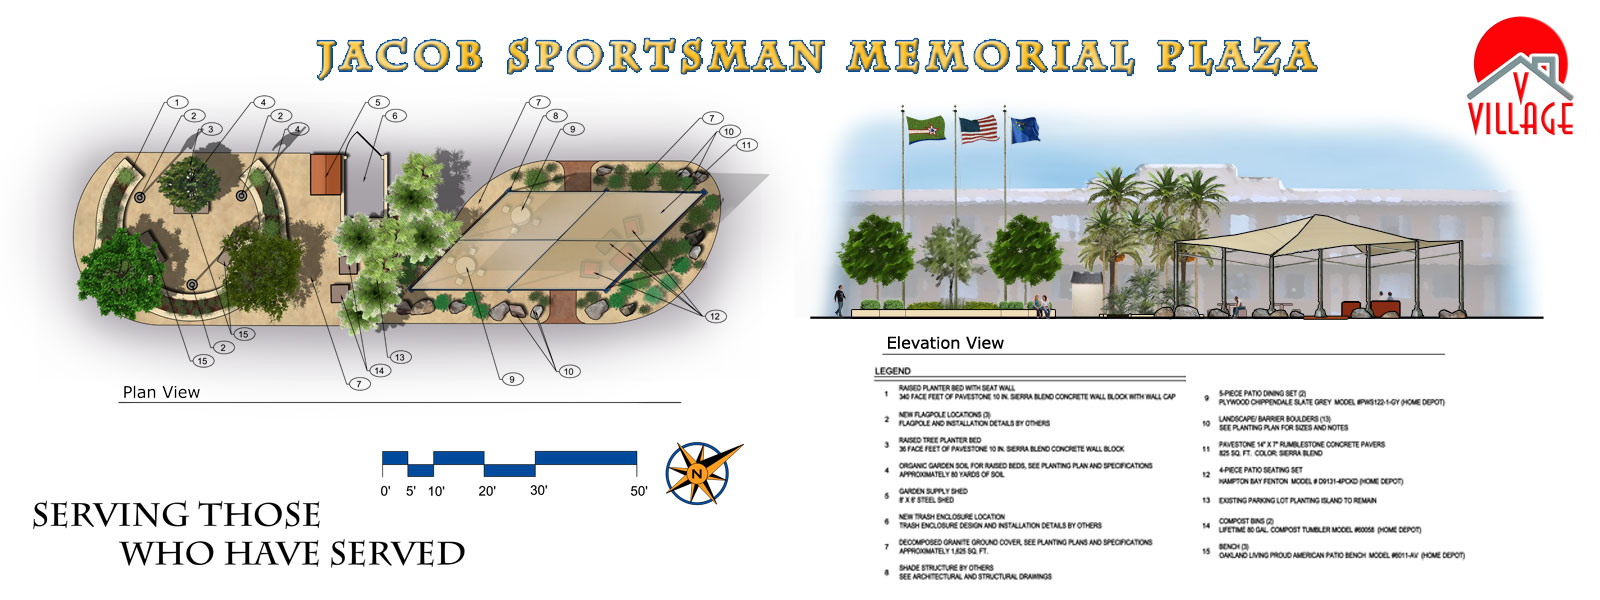 Rendering of the Jacob Sportsman Memorial Plaza at Veteran's Village